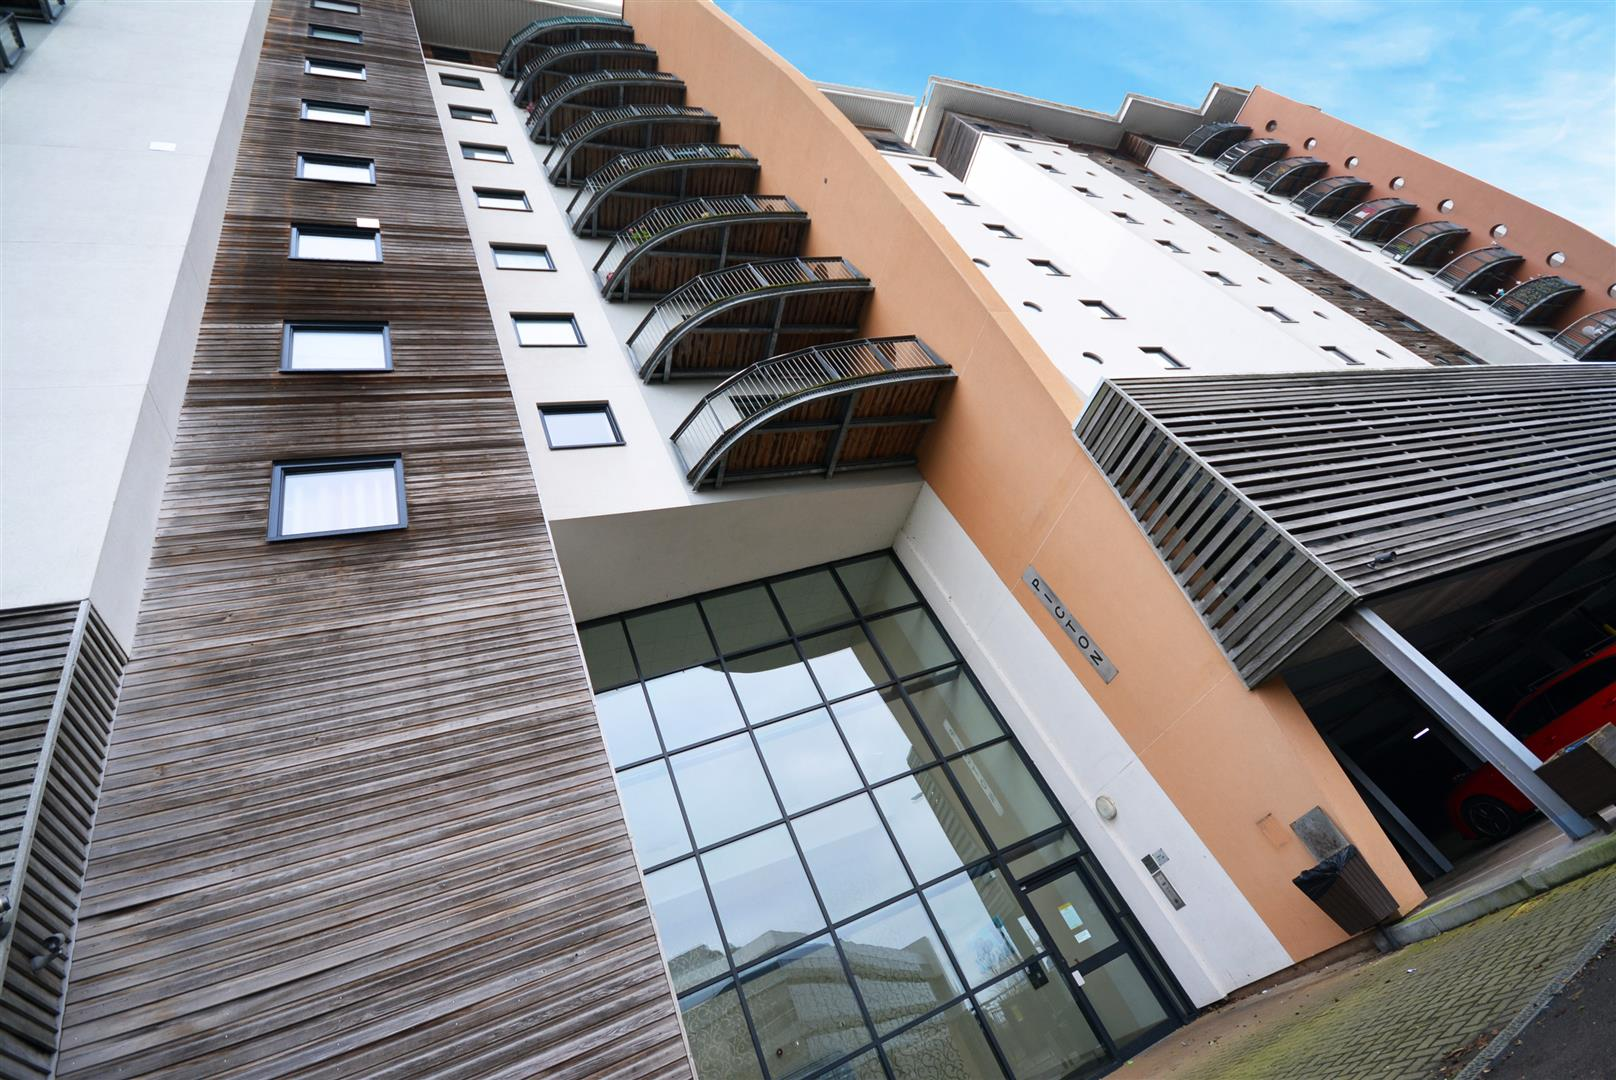 2 bed apartment for sale in Watkiss Way, Cardiff, CF11